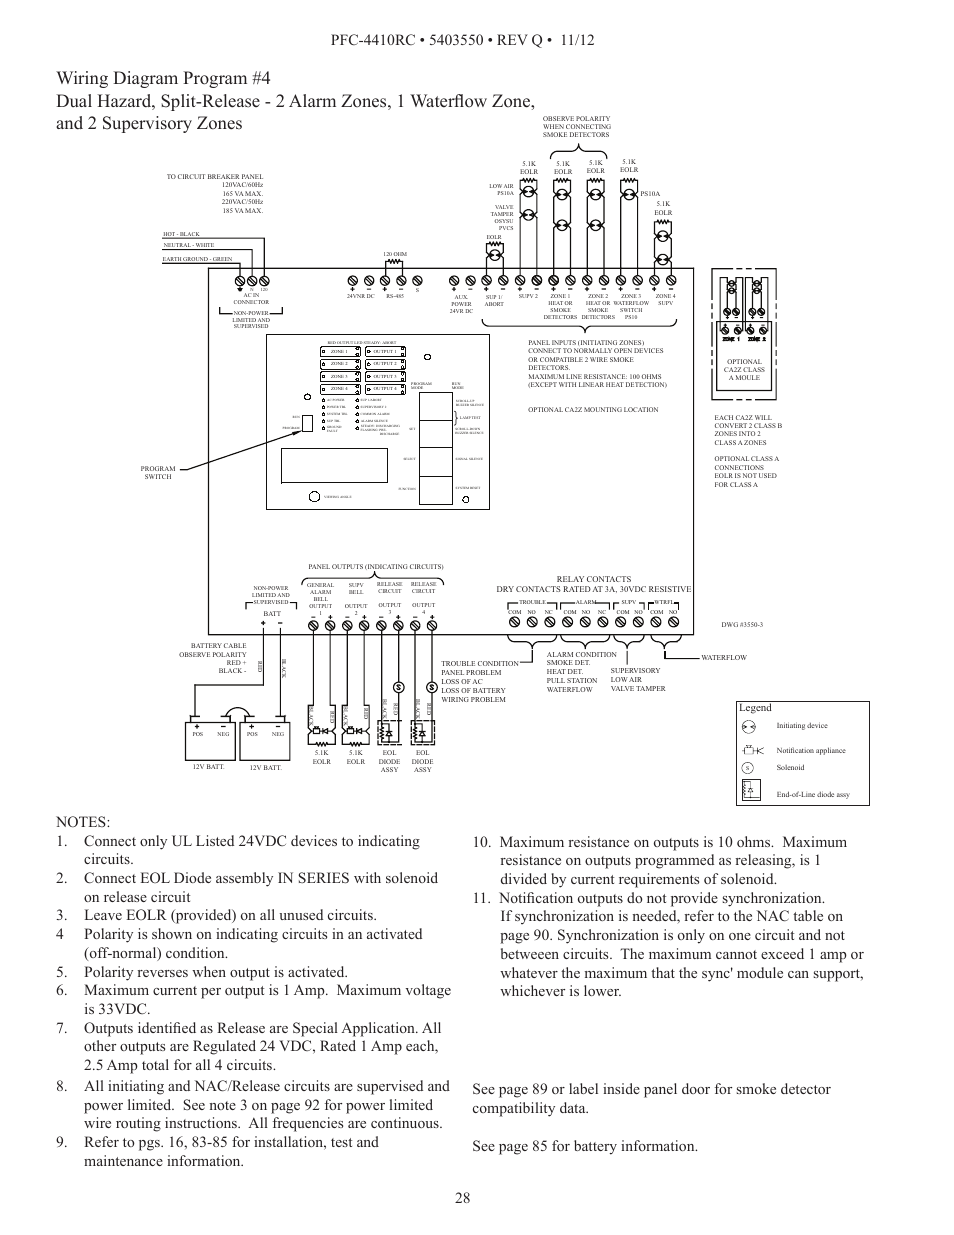 Pfc Wiring Diagram Schemes House Diagrams For Lighting Circuits Potter 4410rc User Manual Page 28 99 Rh Manualsdir Com Residential Electrical Light Switch